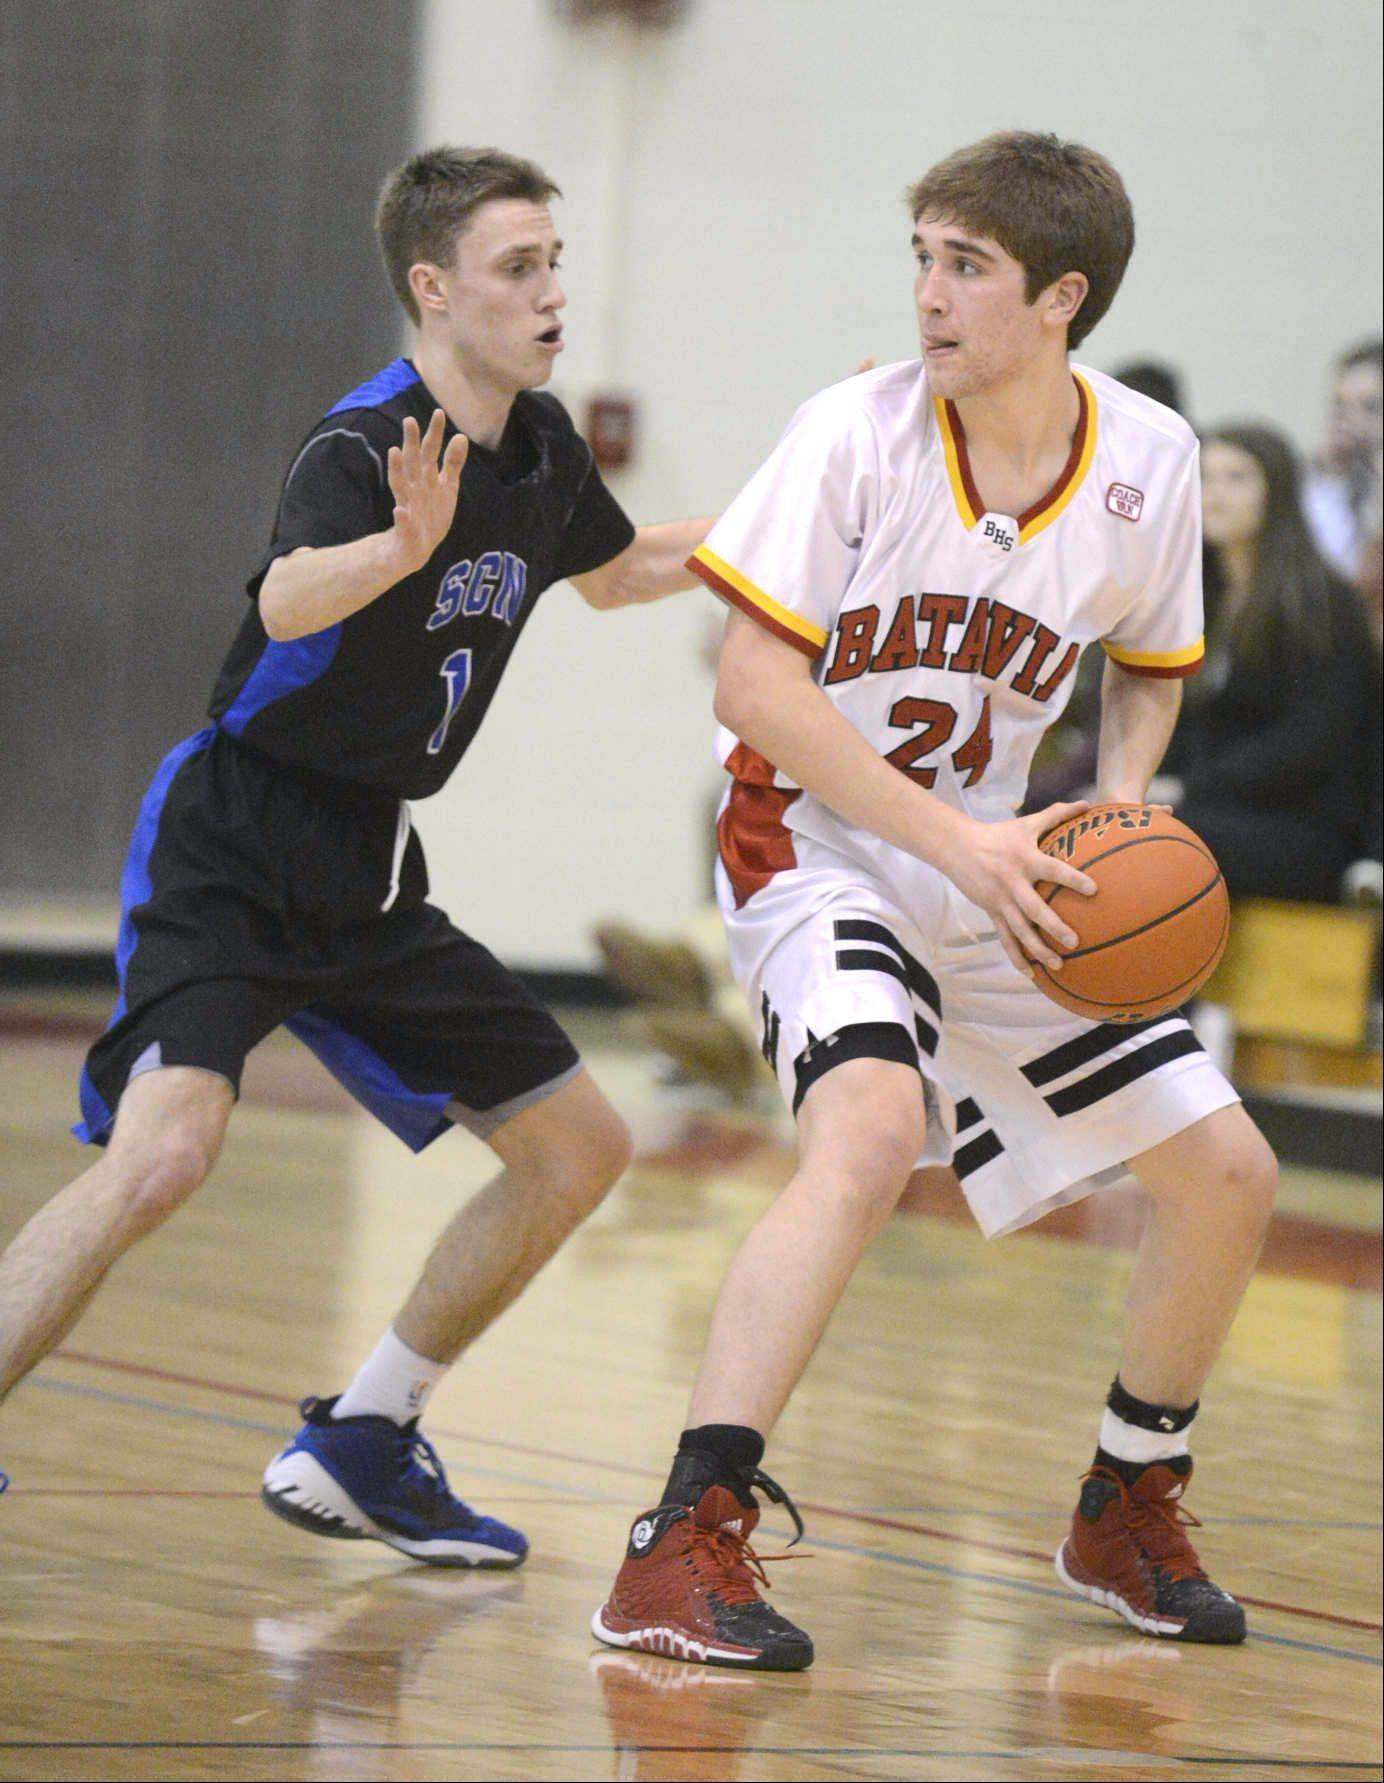 Images from the St. Charles North at Batavia boys basketball game Friday, February 7, 2014 in Batavia.